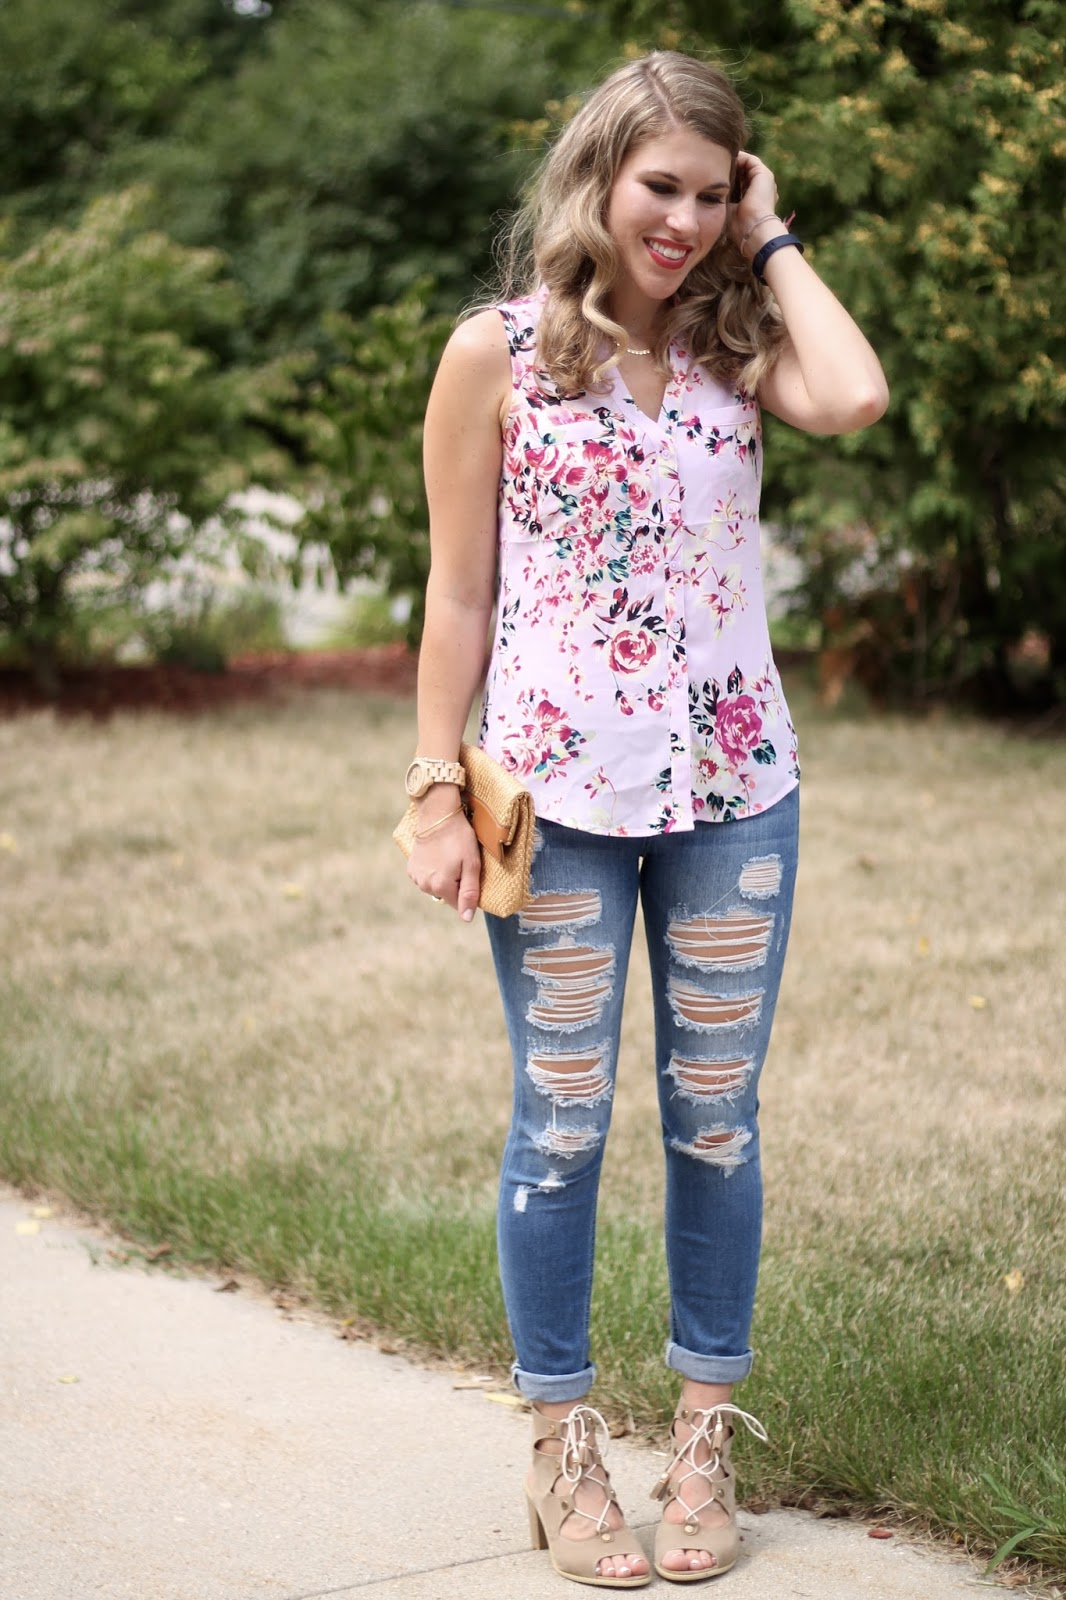 pink floral portofino sleeveless shirt, distressed jeans, lace up heeled sandals, straw clutch, summer outfit, casual summer outfit